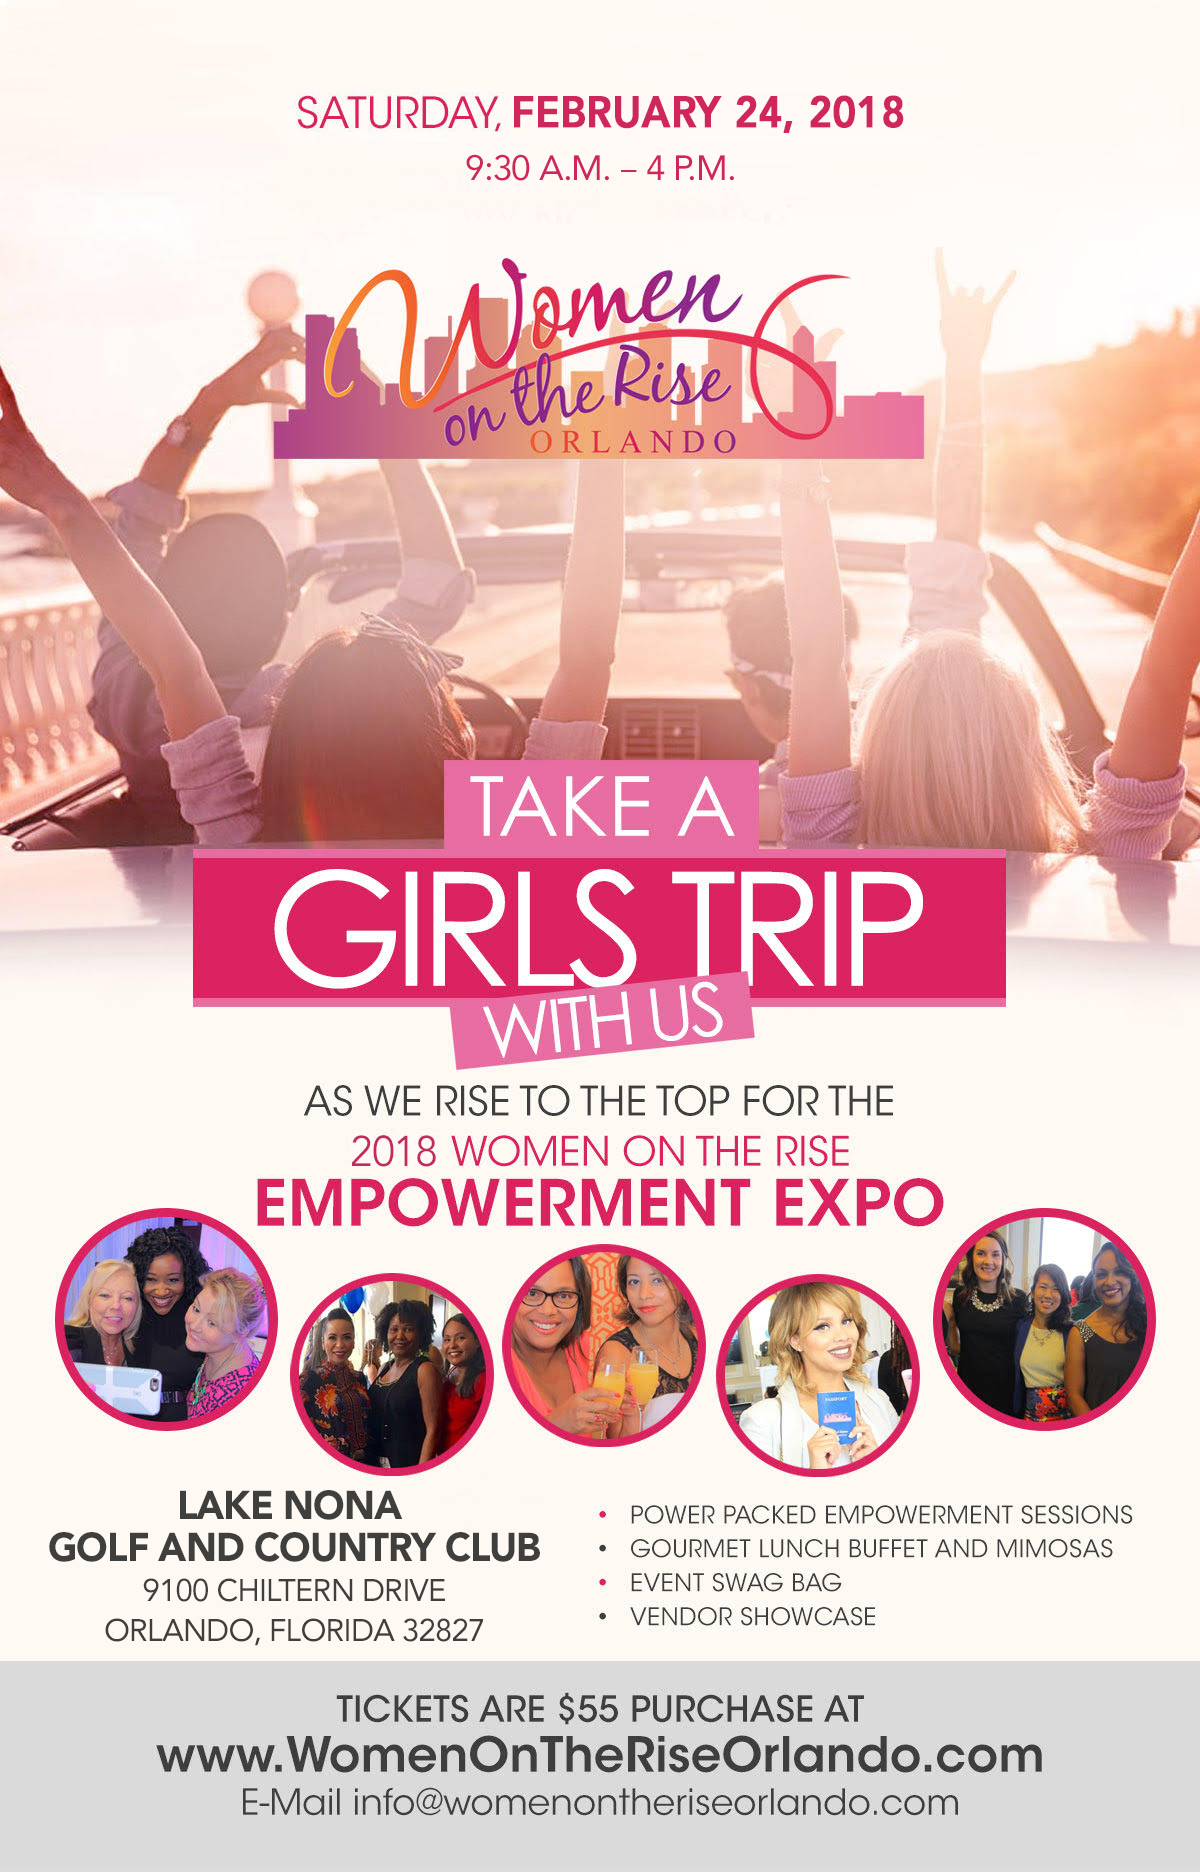 Women on the Rise Conference & Empowerment Expo